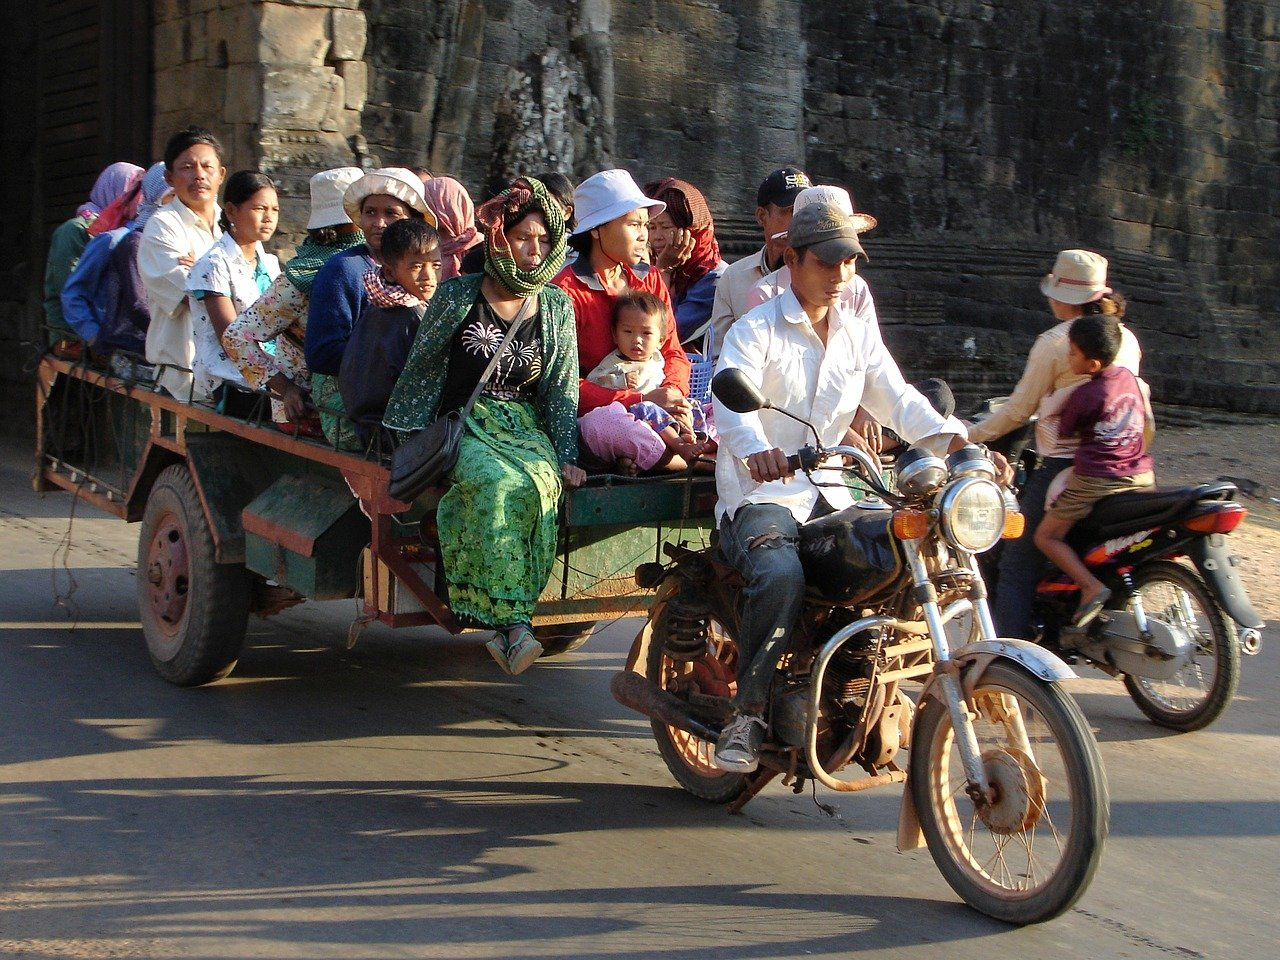 Cambodia is striving to upgrade its transport network